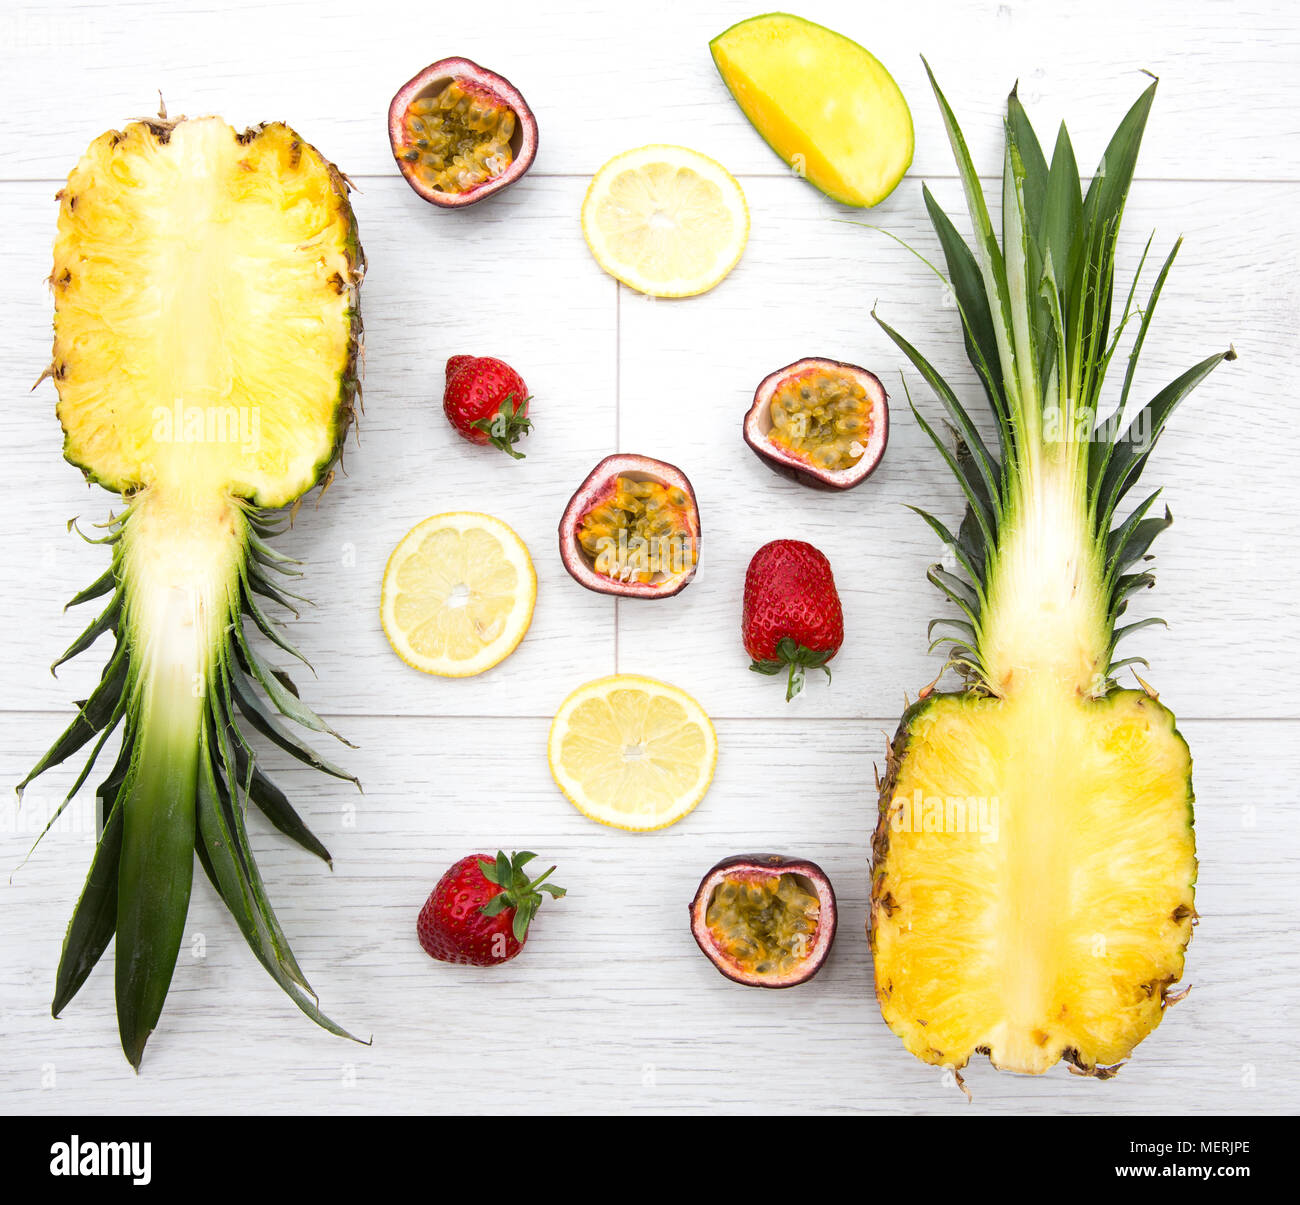 Looking down from above onto the fresh fruit such as passion fruit,mango, strawberry and pineapple which are the ingredients for a tropical smoothie. - Stock Image